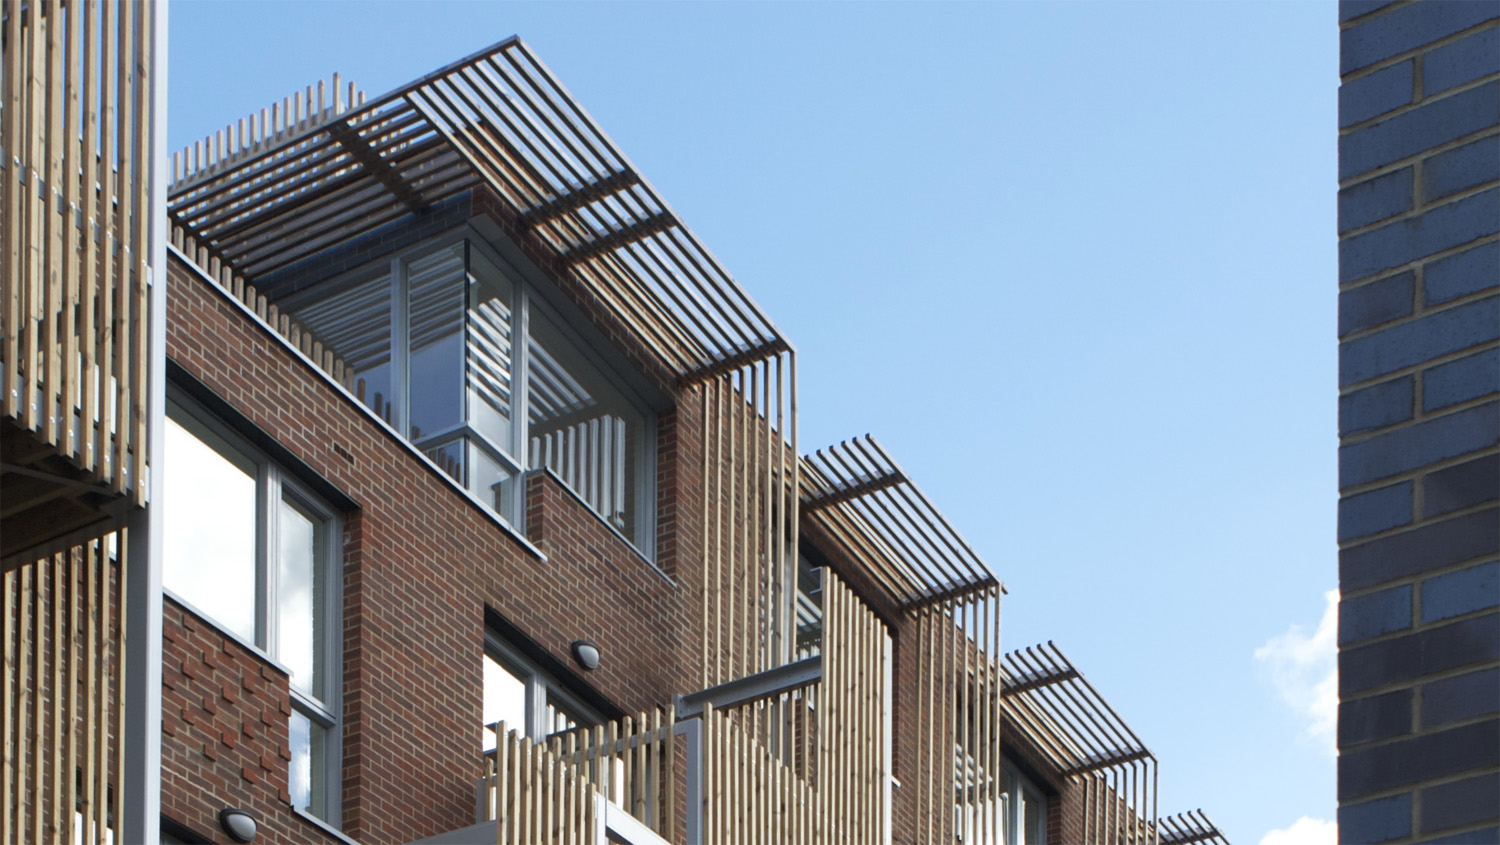 New-build comprising 33 flats over four to five storeys, with a shared rooftop terrace.